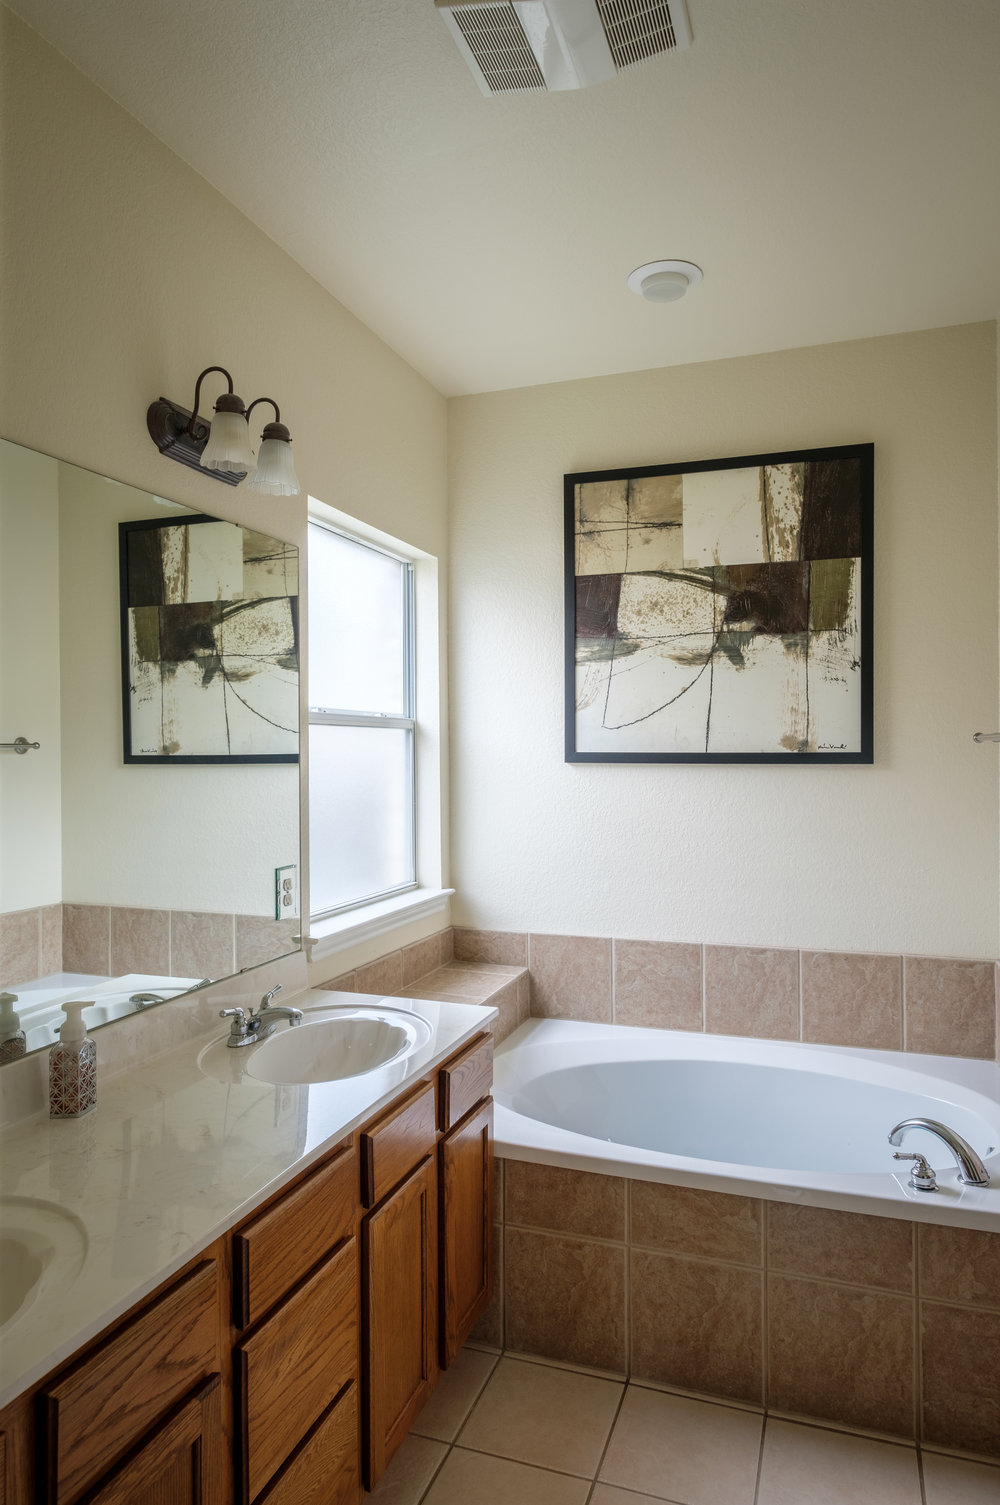 Rental Agency Photography Interior